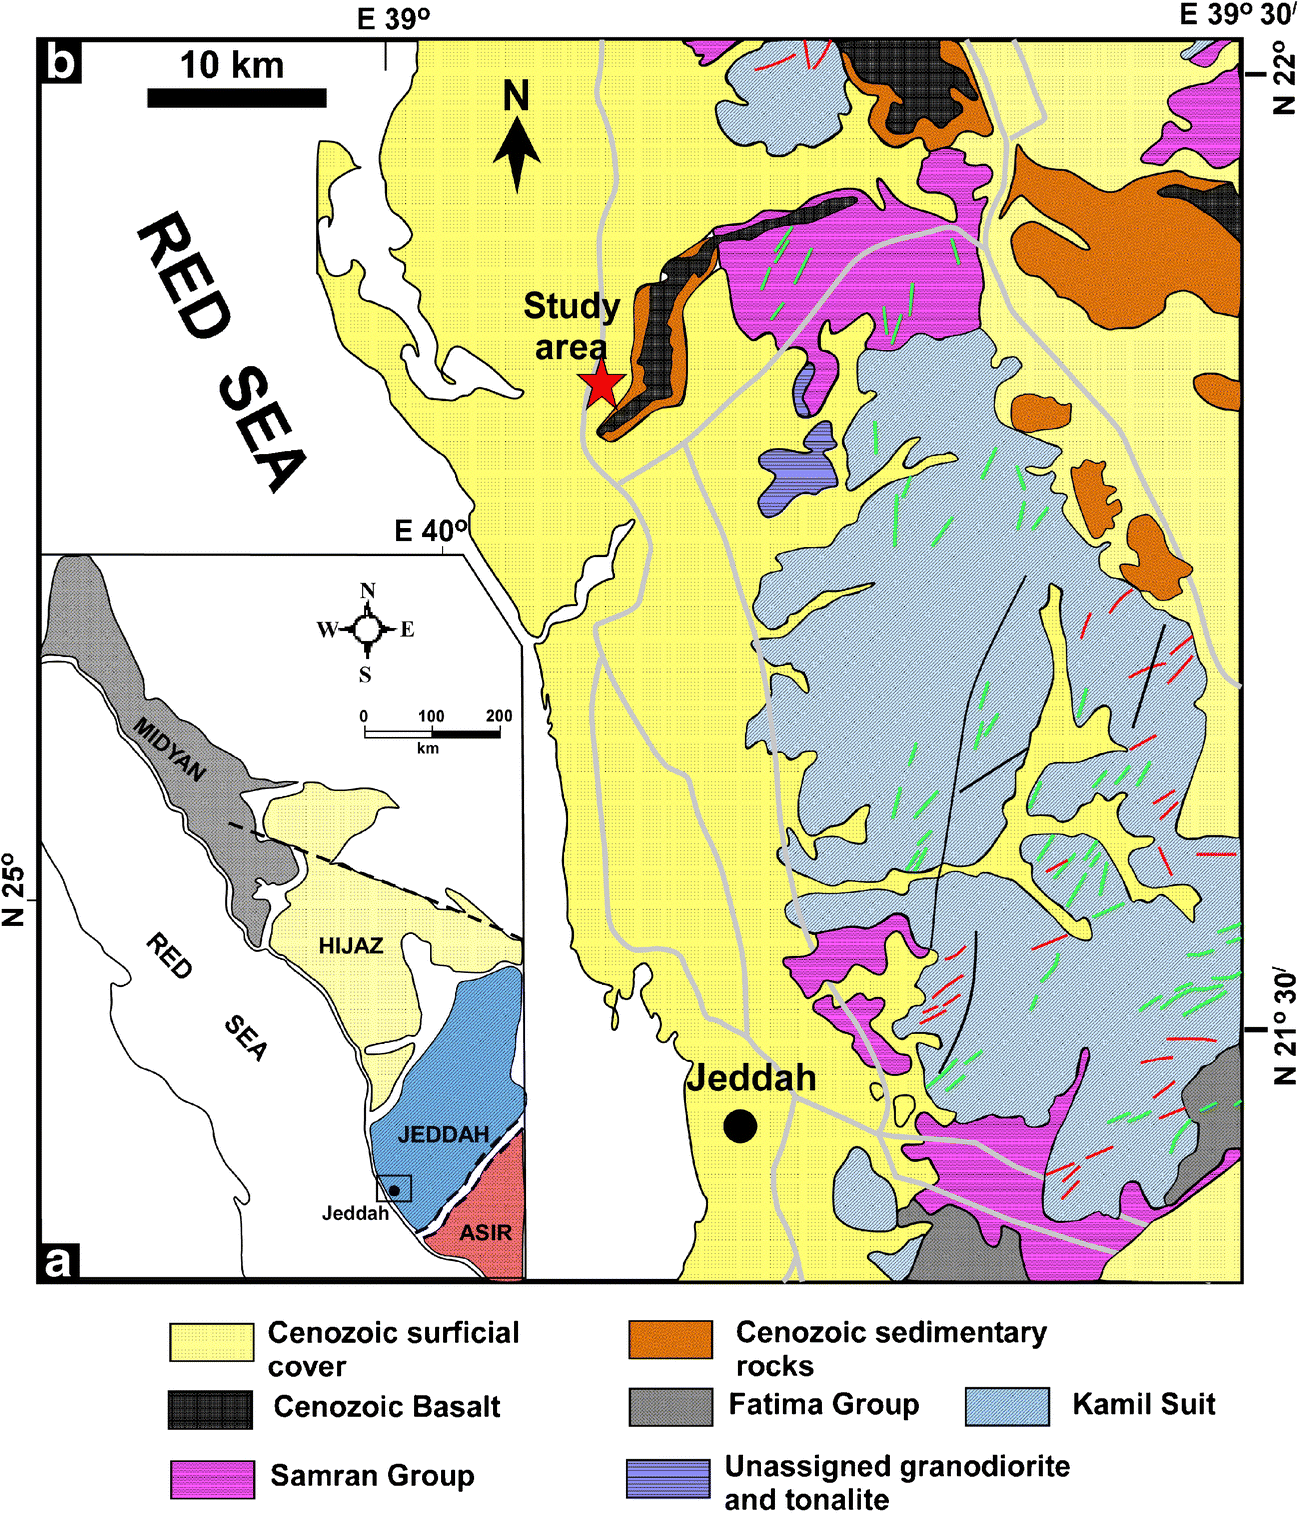 Geochemistry of the middle-upper Miocene Bathan Formation